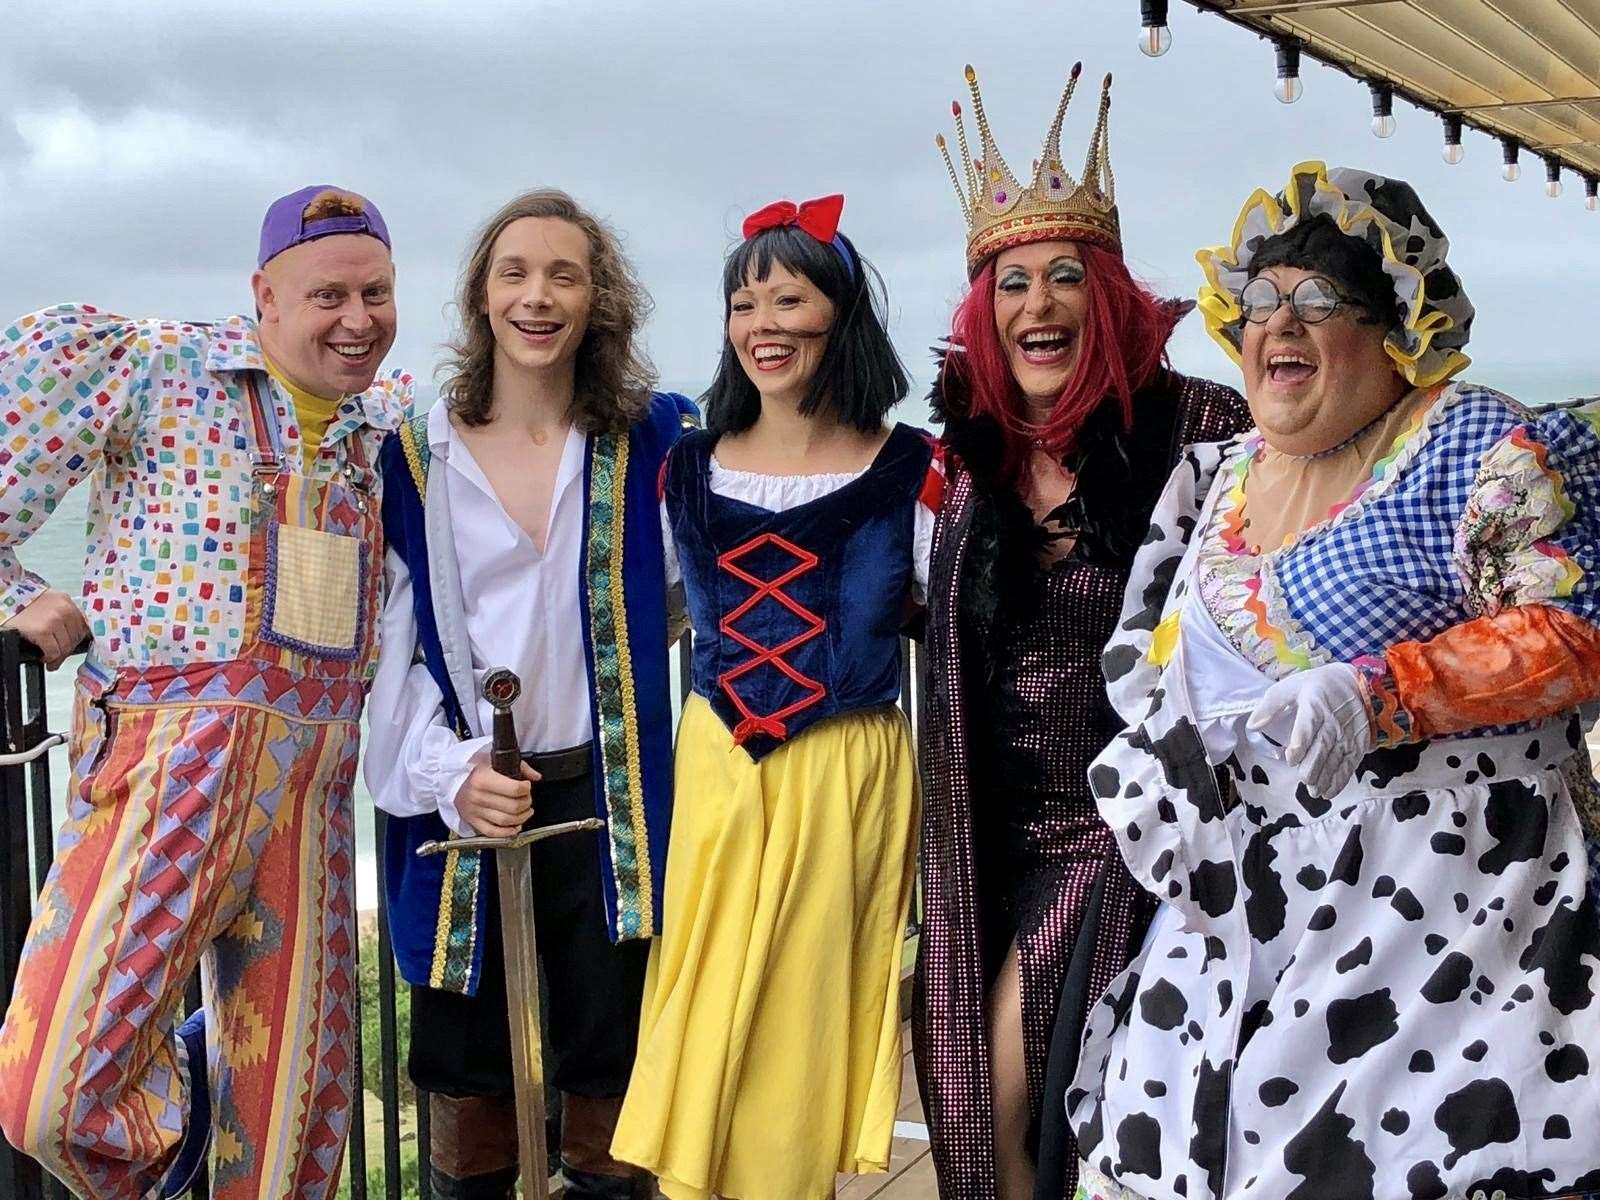 Stars of Folkestone's panto, Snow White and the Seven Dwarfs, will perform at the light turn on tonight